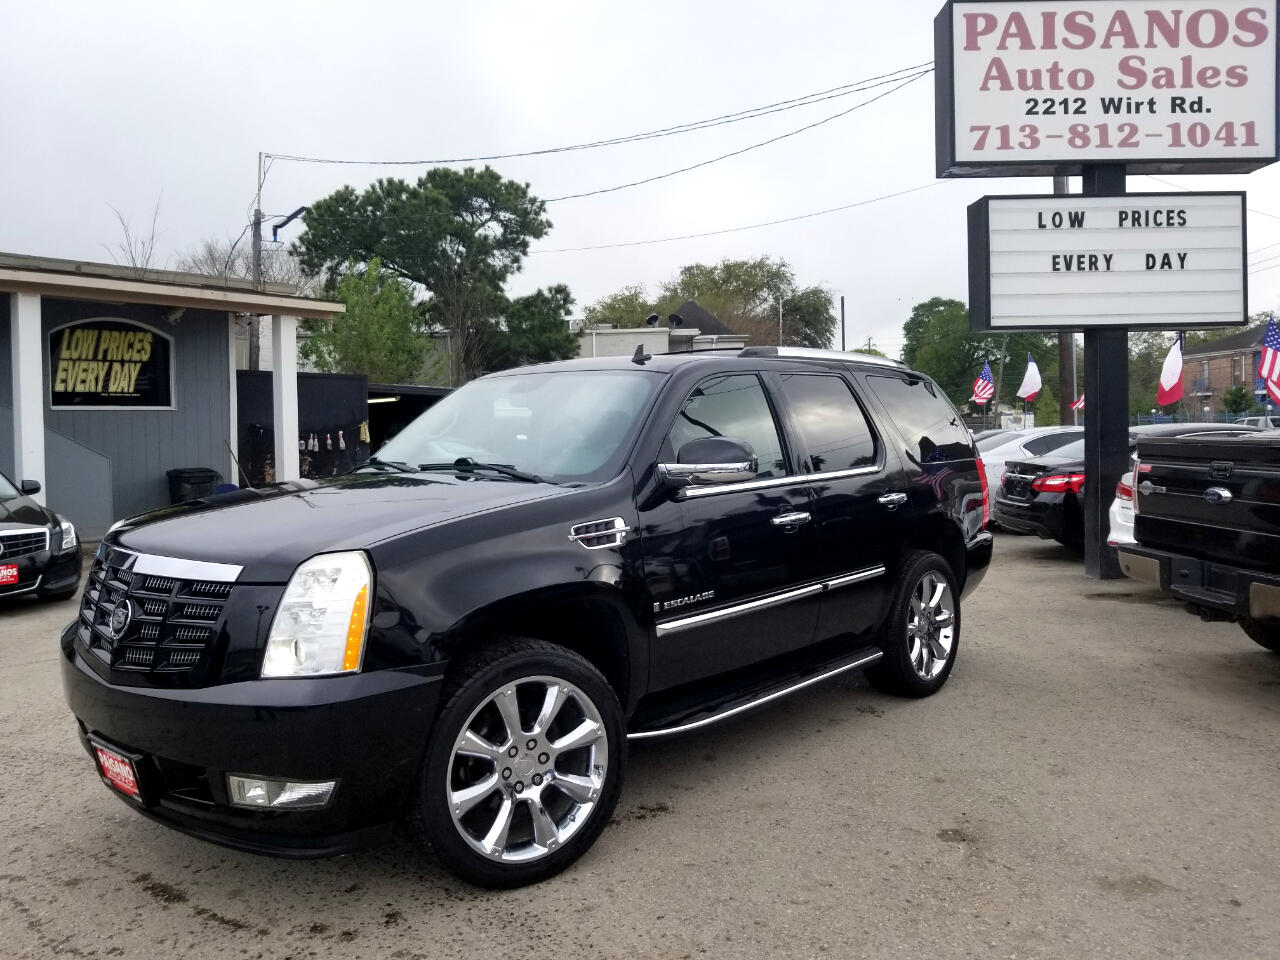 Paisanos Auto Sales >> Used 2014 Cadillac Escalade Luxury AWD for Sale in Houston TX 77055 Paisanos Auto